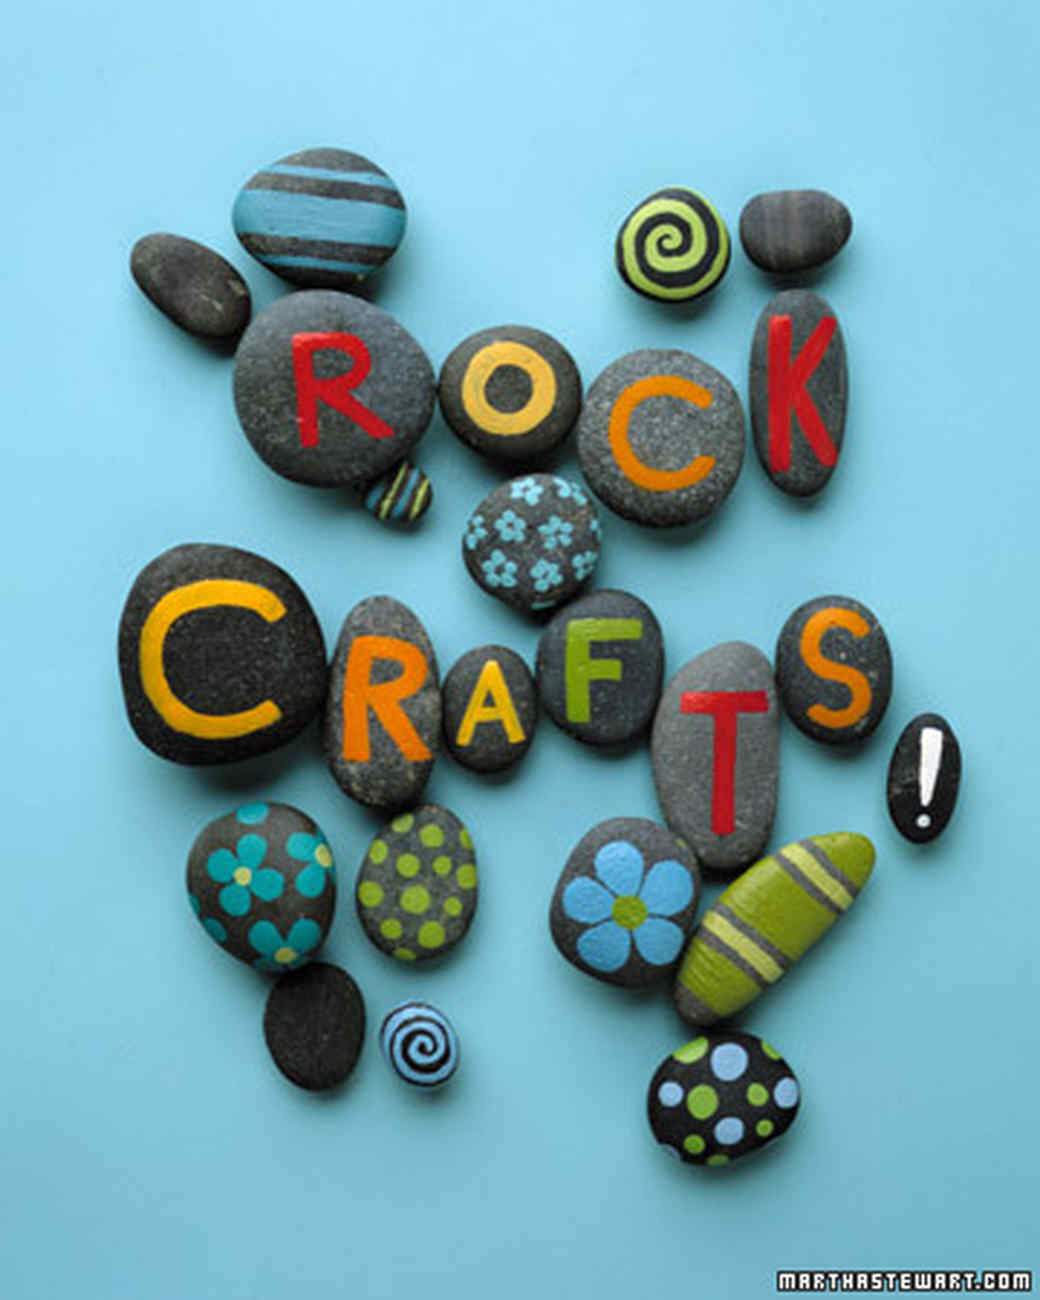 rock_crafts_main.jpg